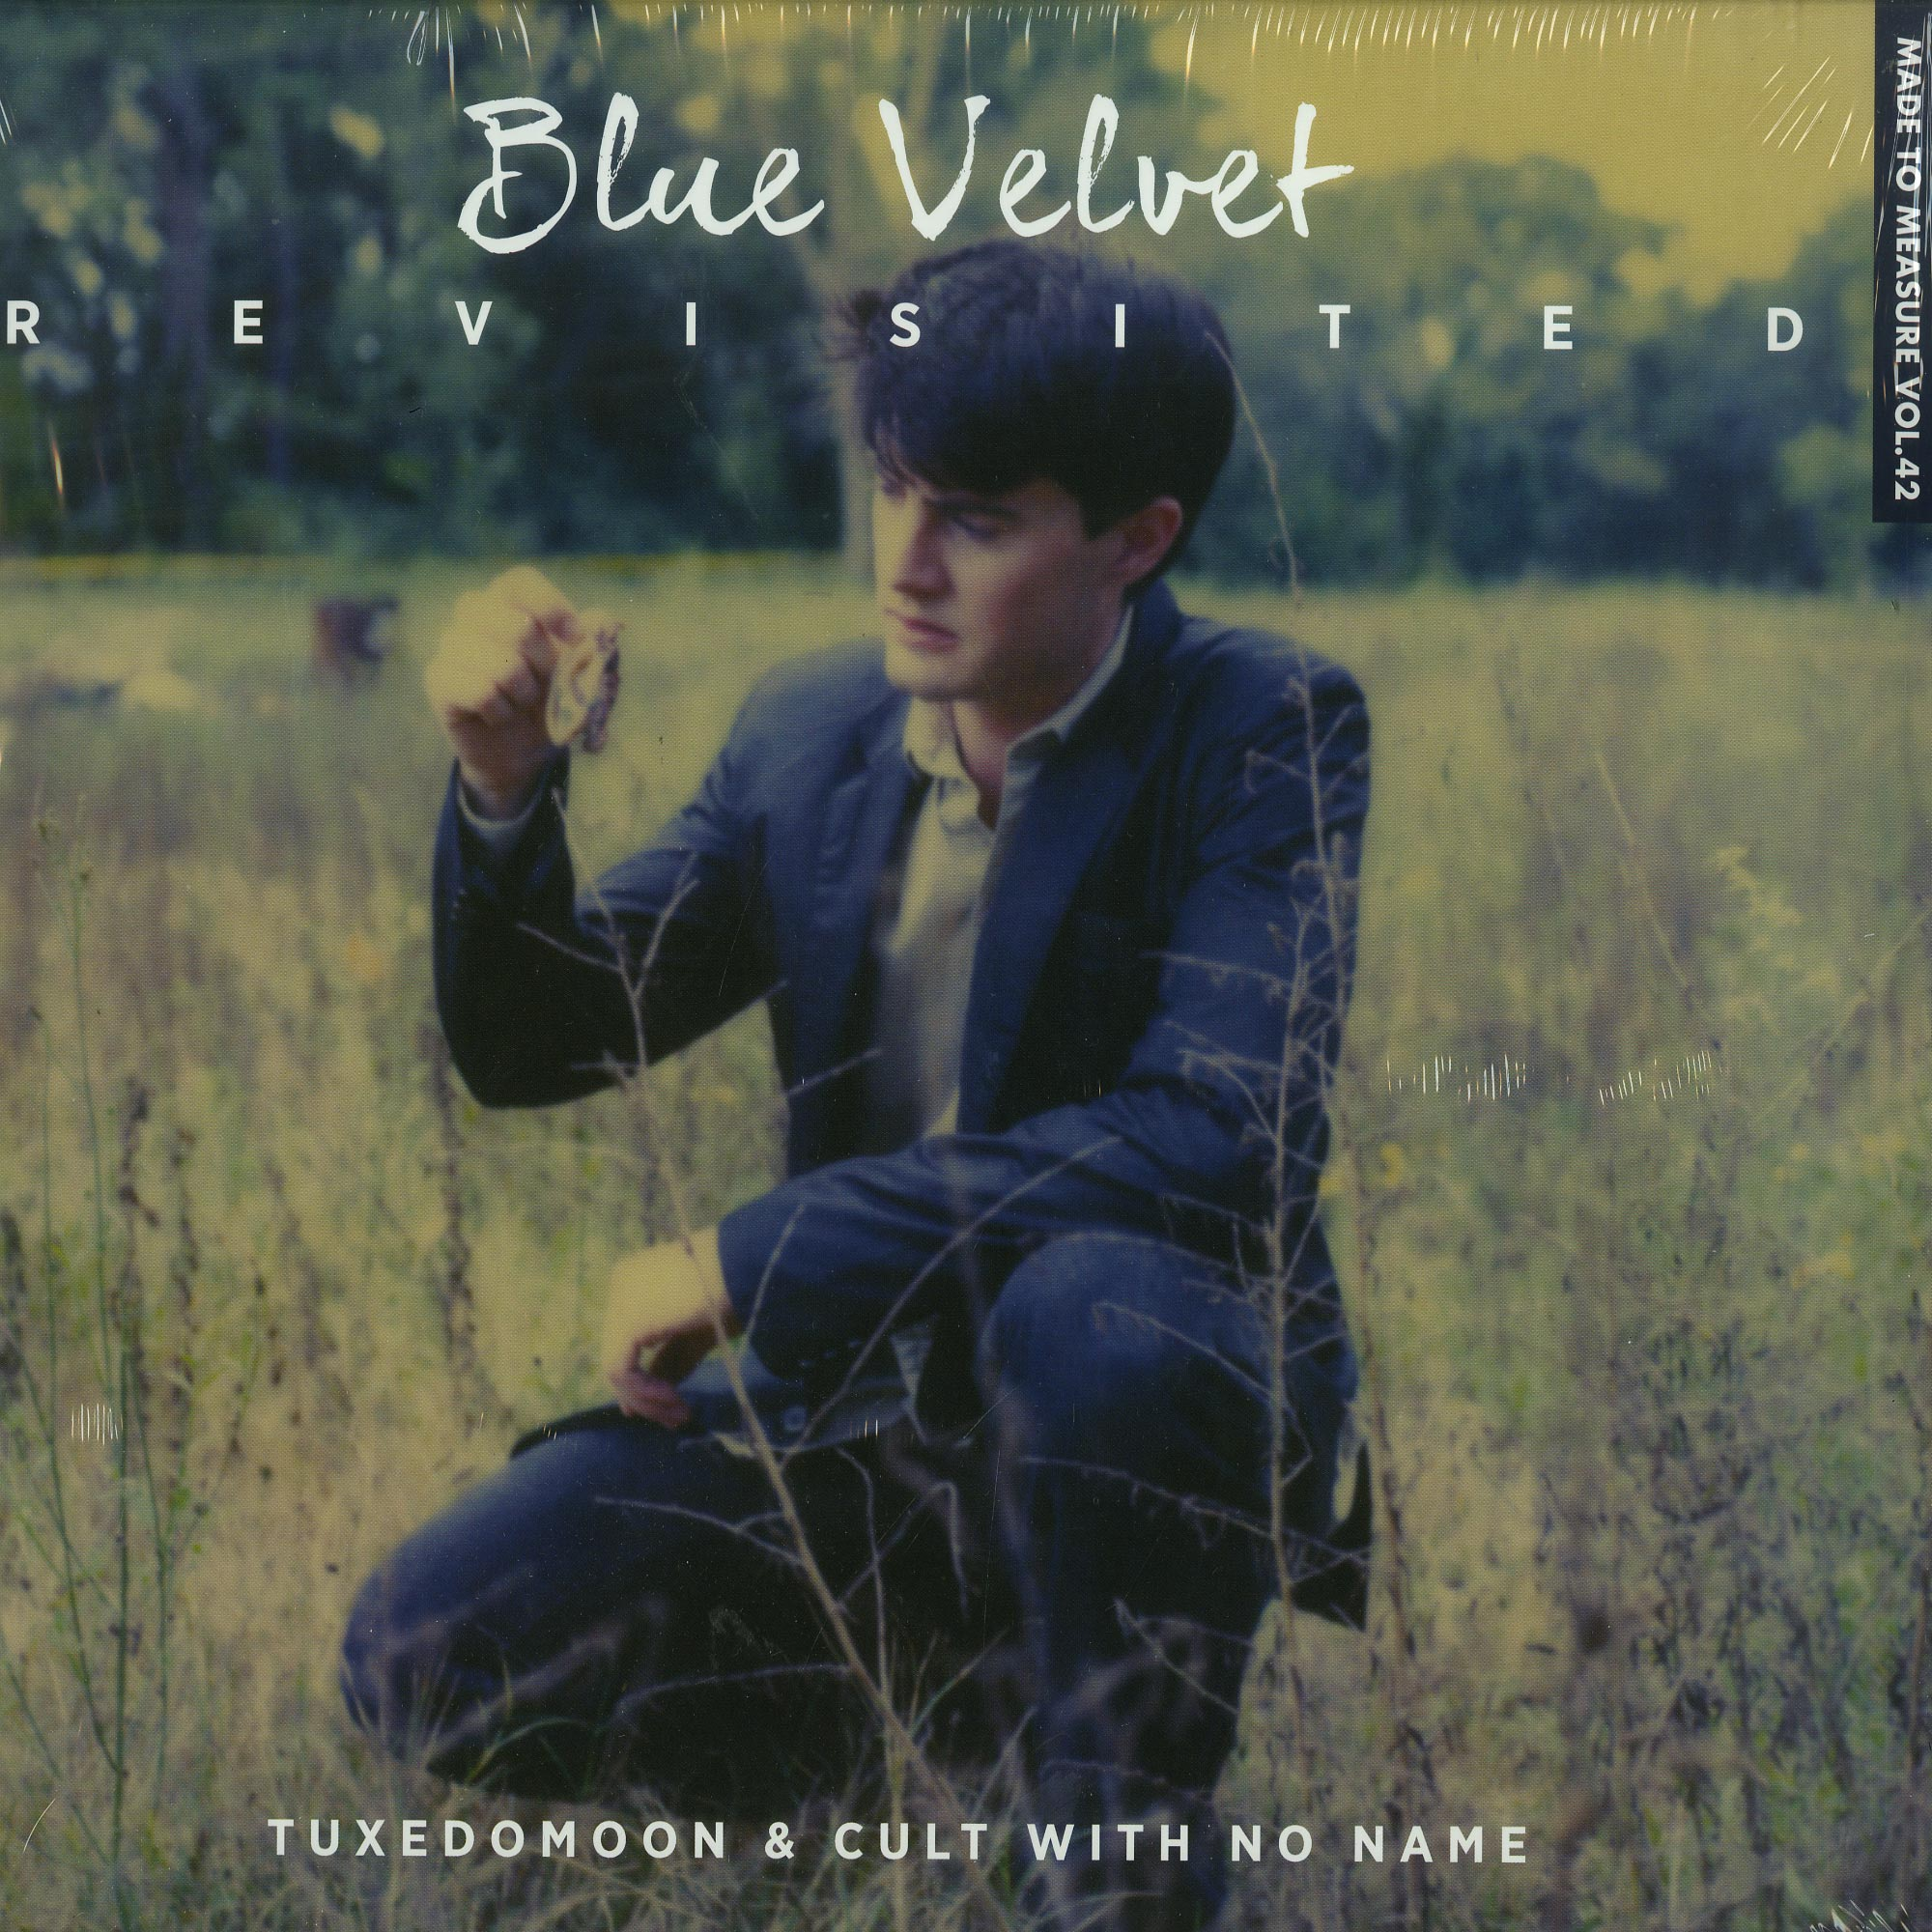 Tuxedomoon & Cult With No Name - BLUE VELVET REVISITED O.S.T.